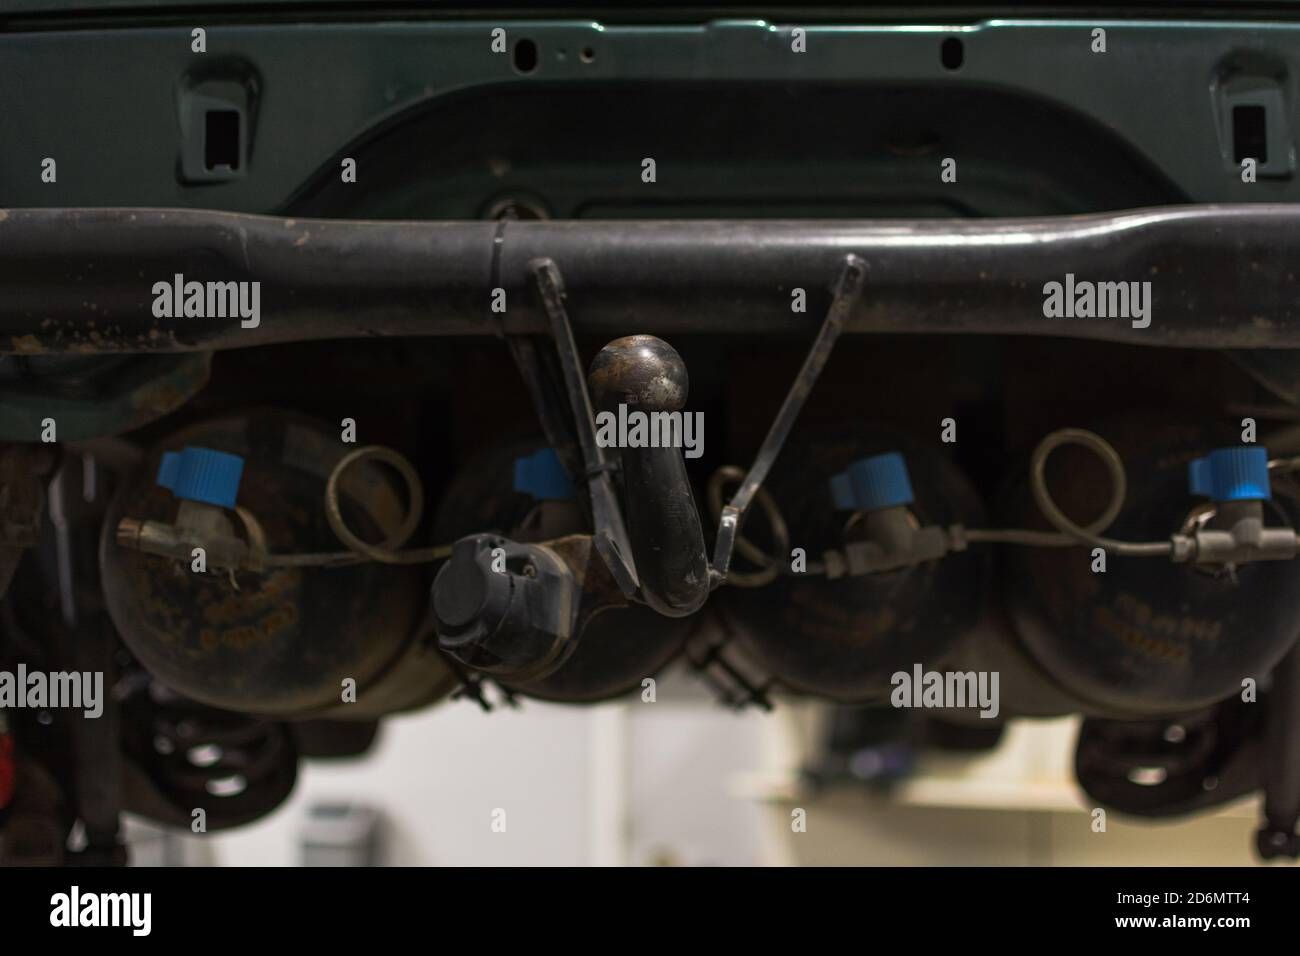 Tow Bar High Resolution Stock Photography And Images Alamy